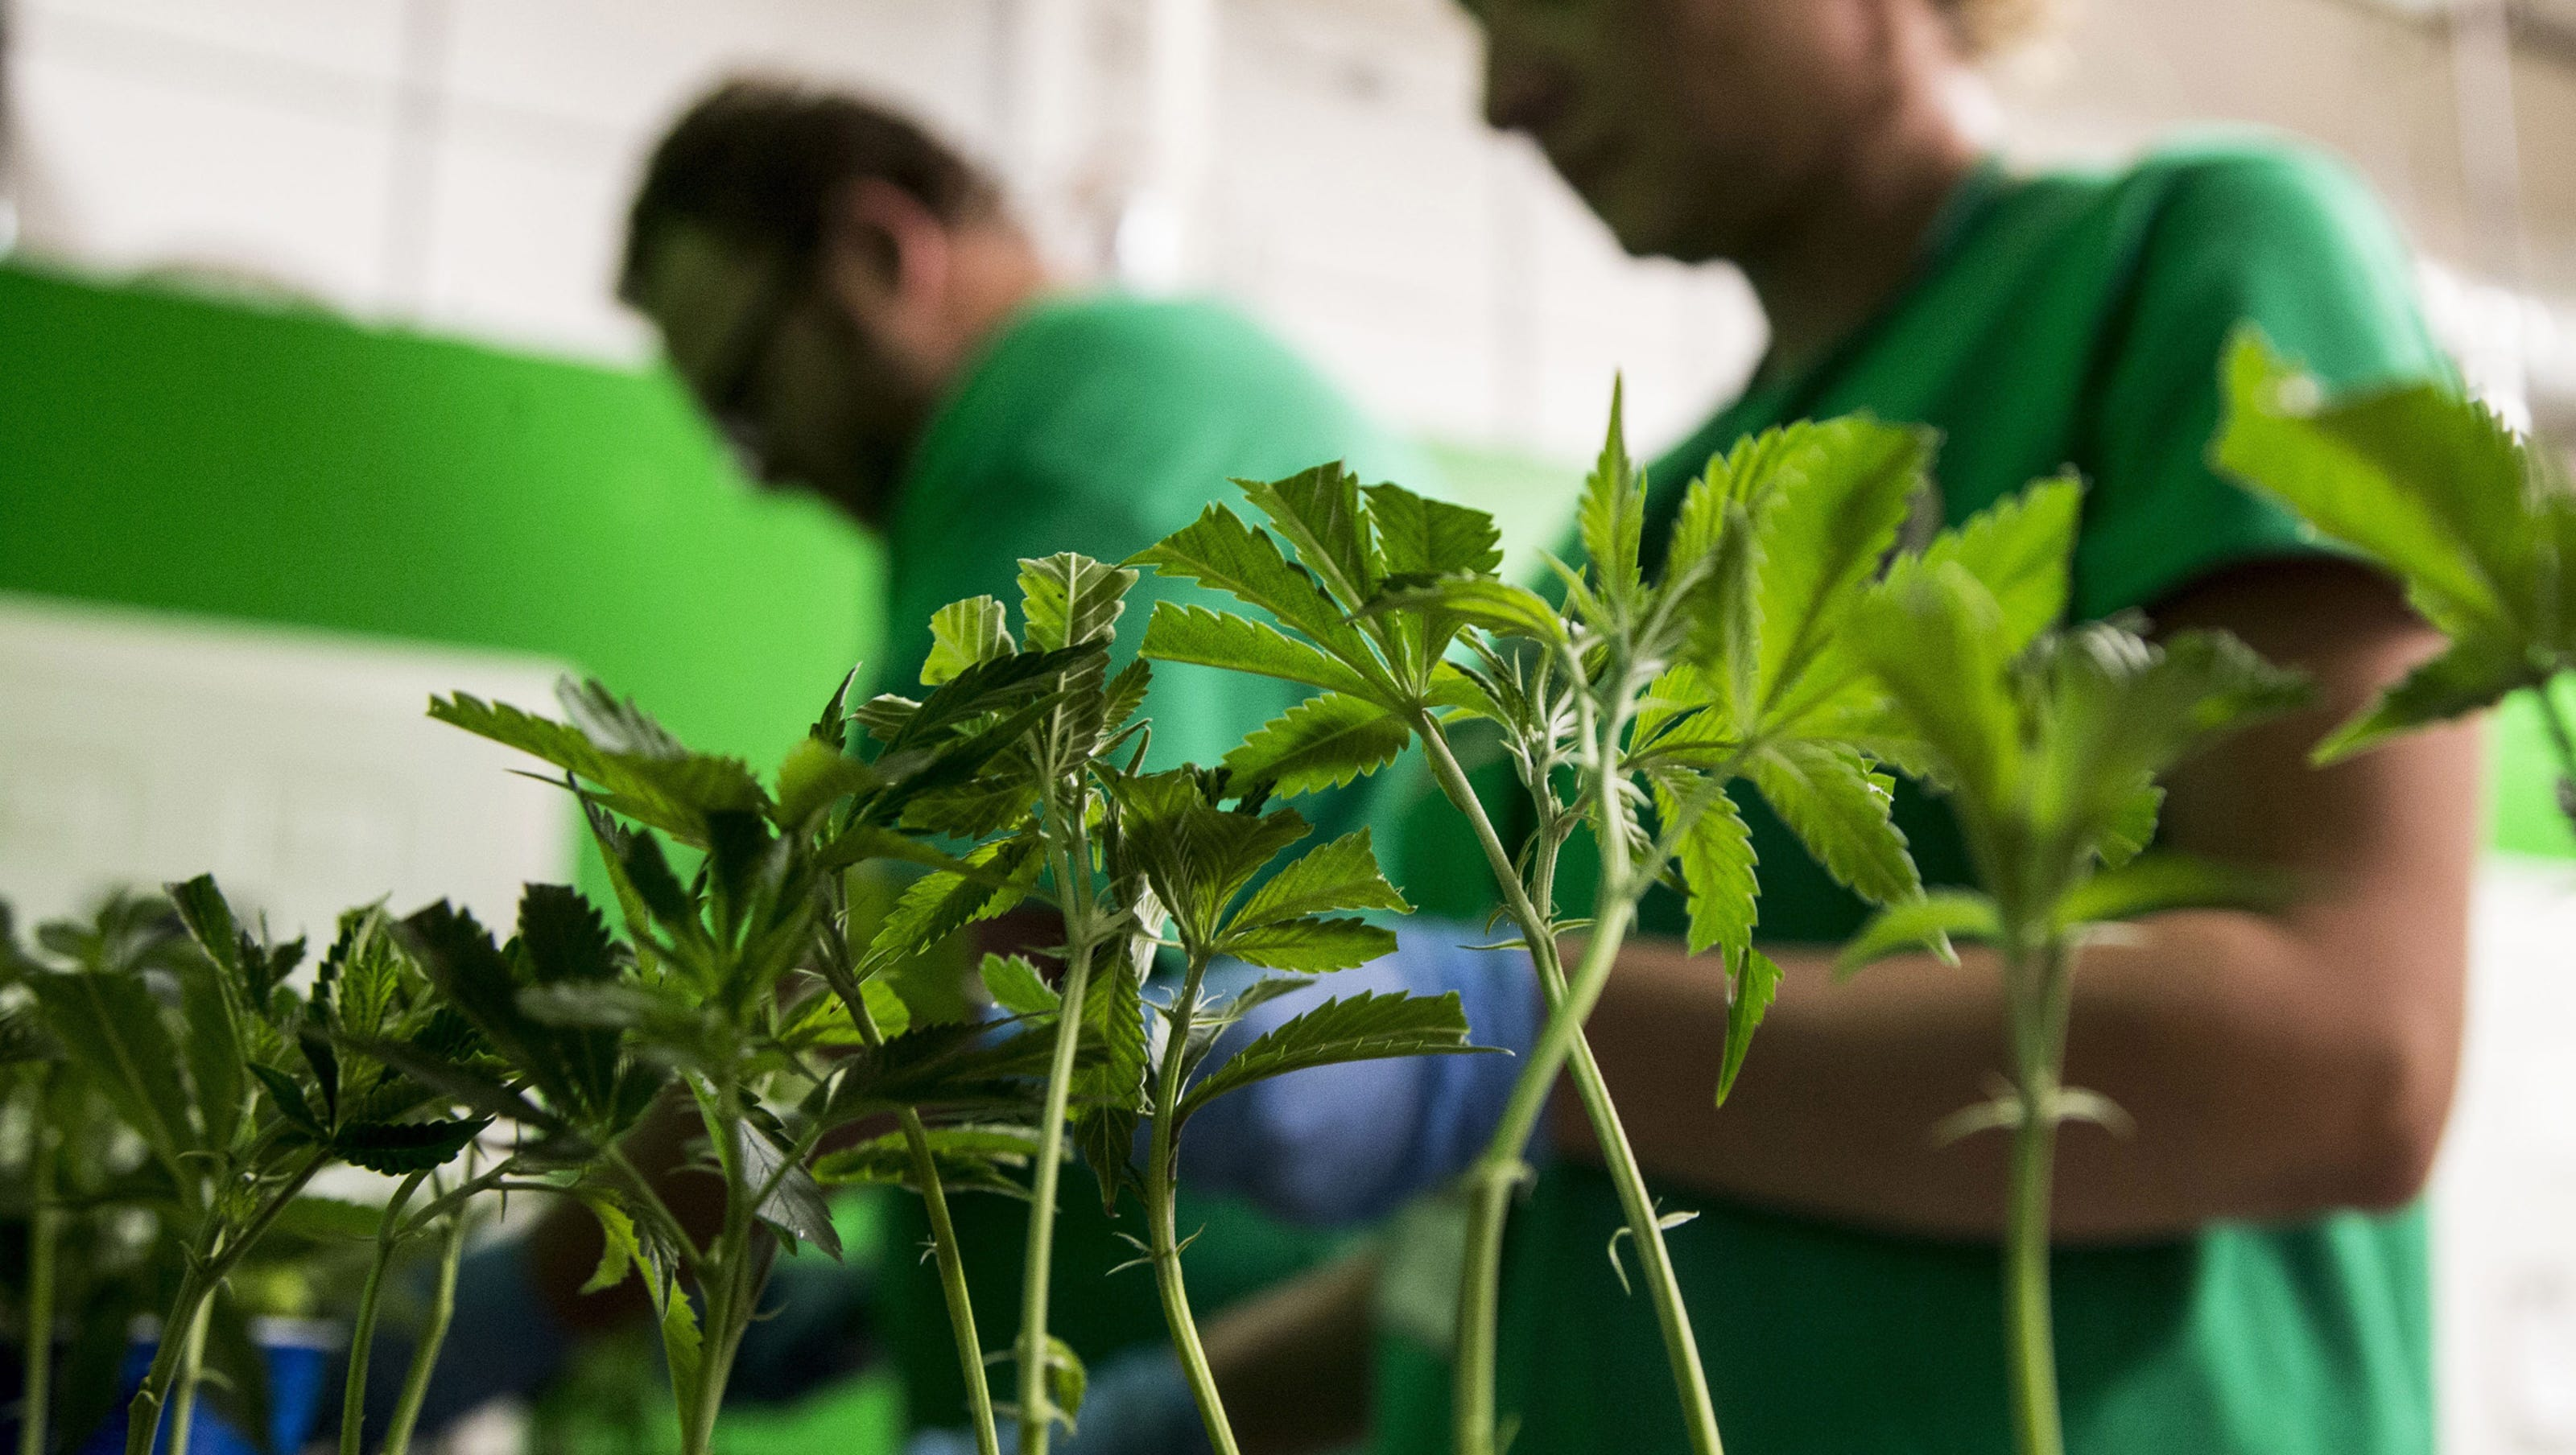 Bill to legalize recreational pot has strong bipartisan support